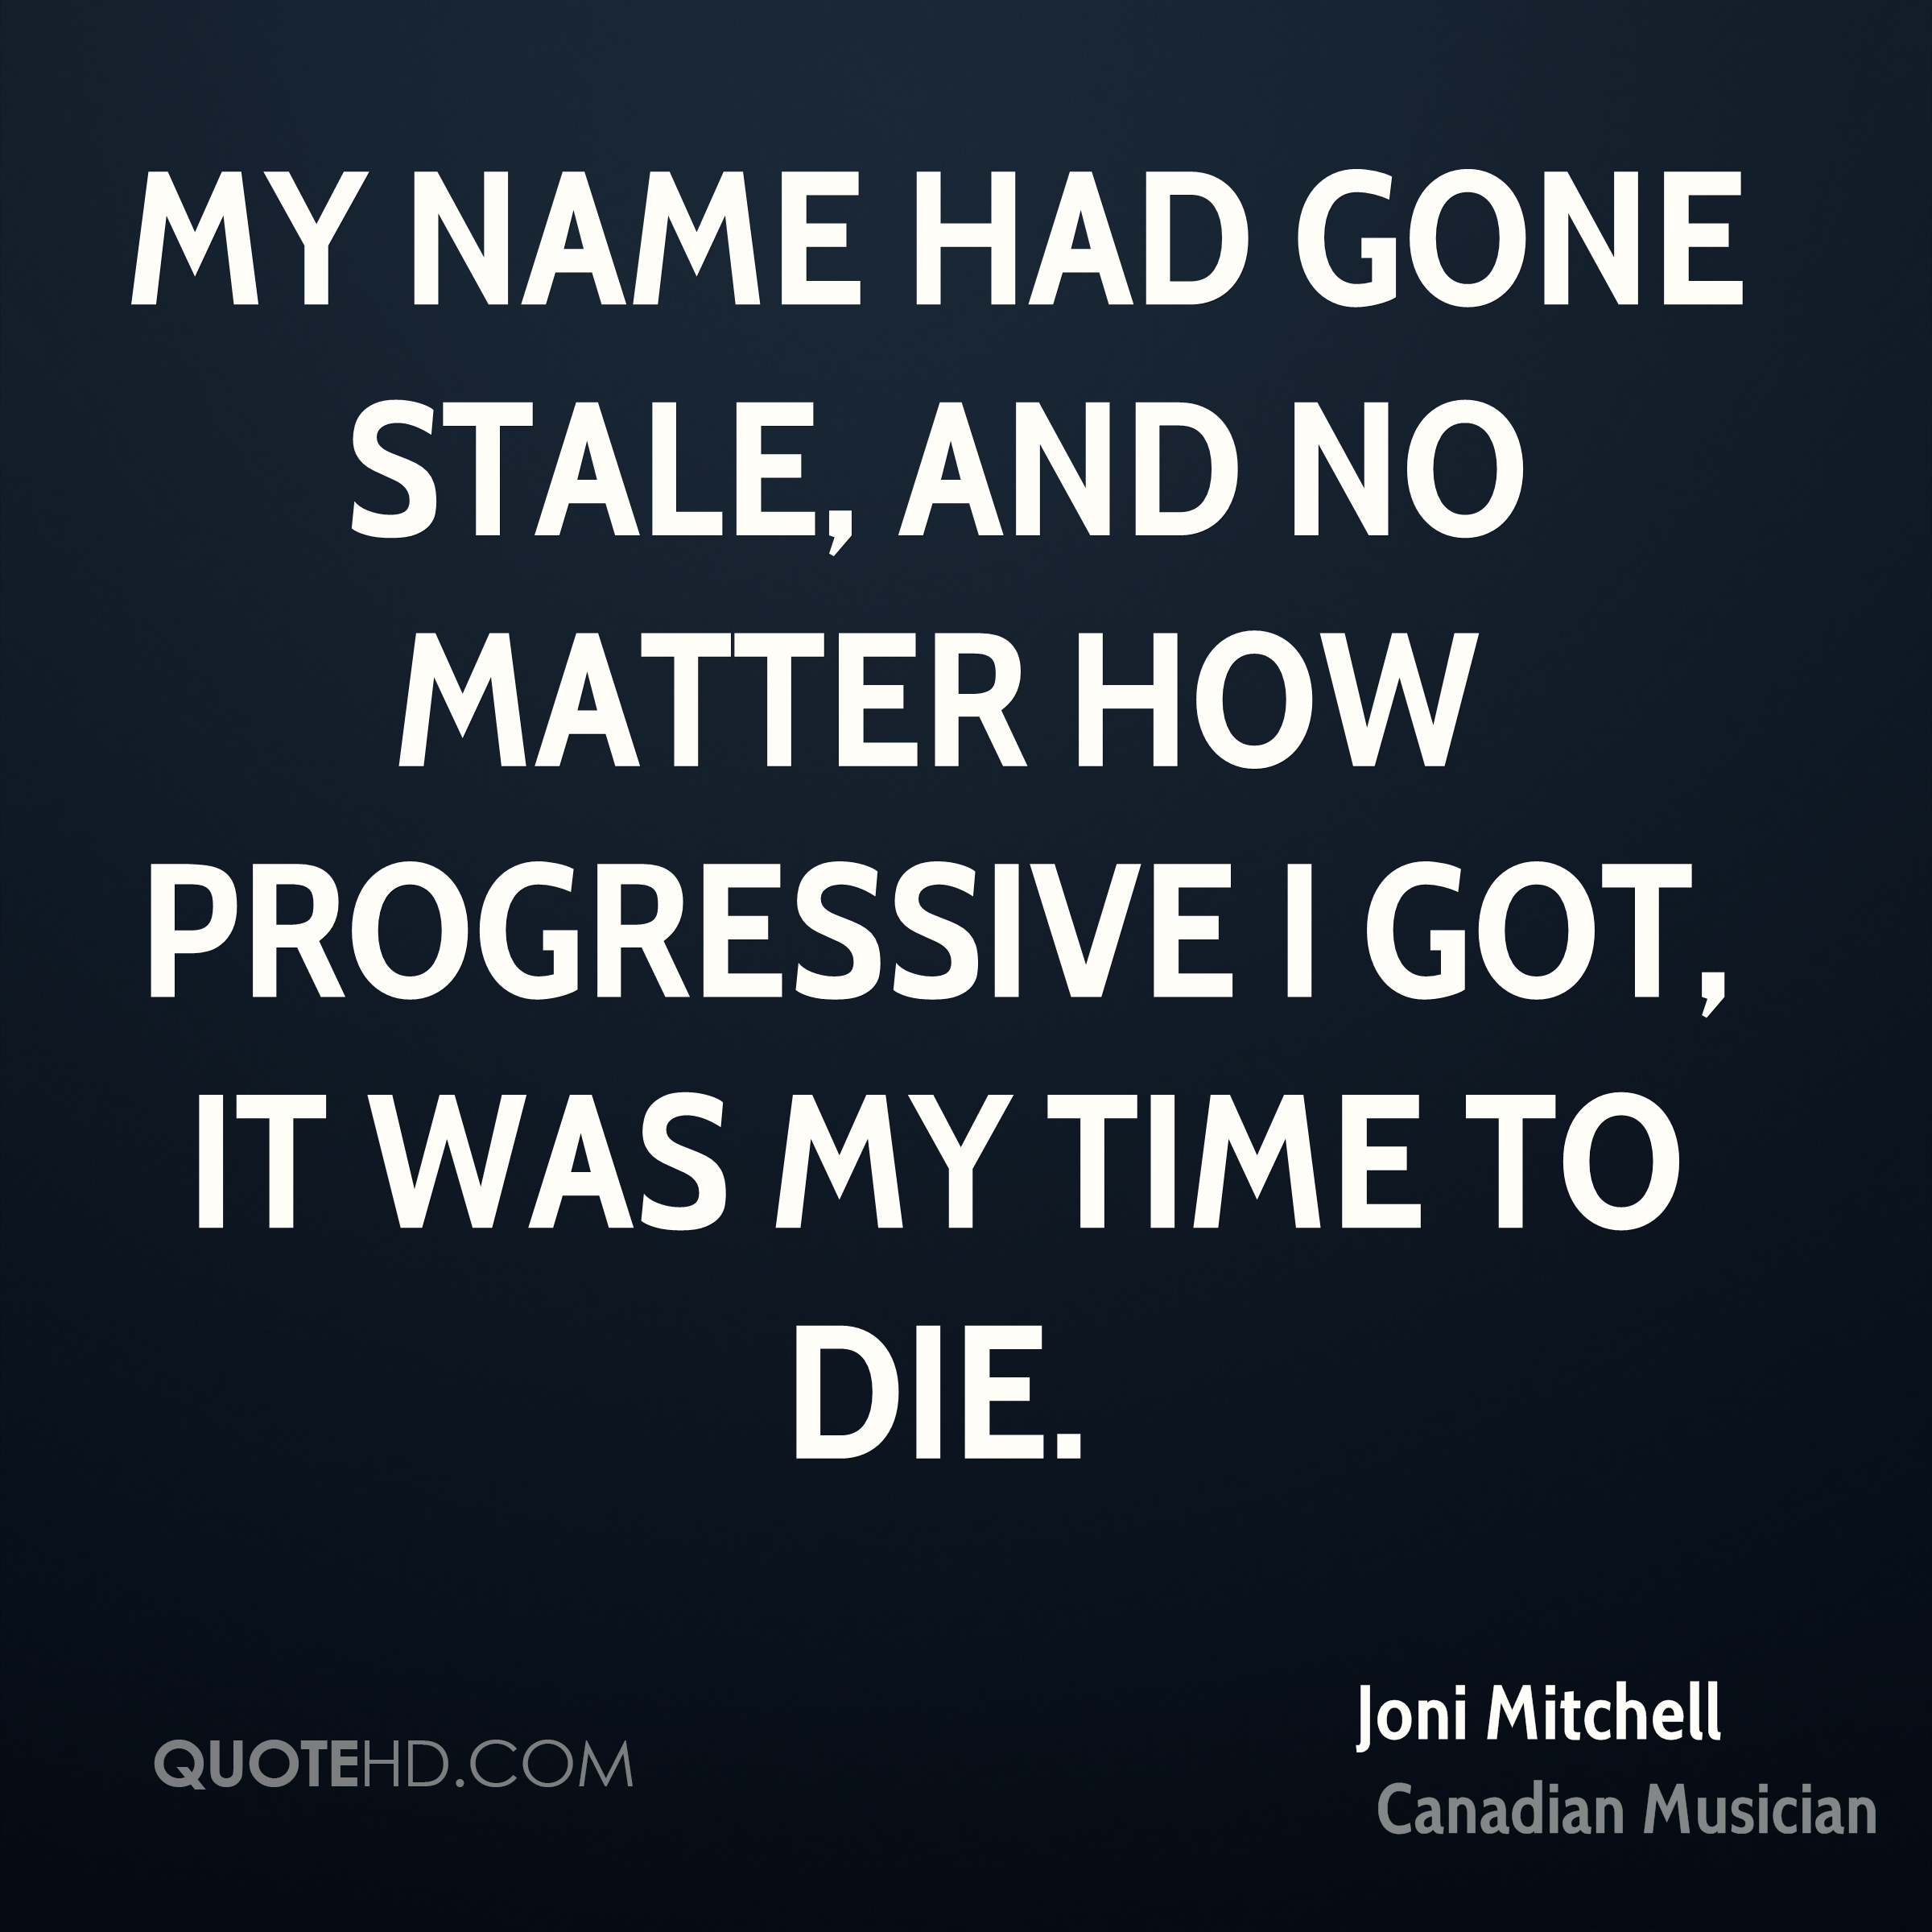 My name had gone stale, and no matter how progressive I got, it was my time to die.